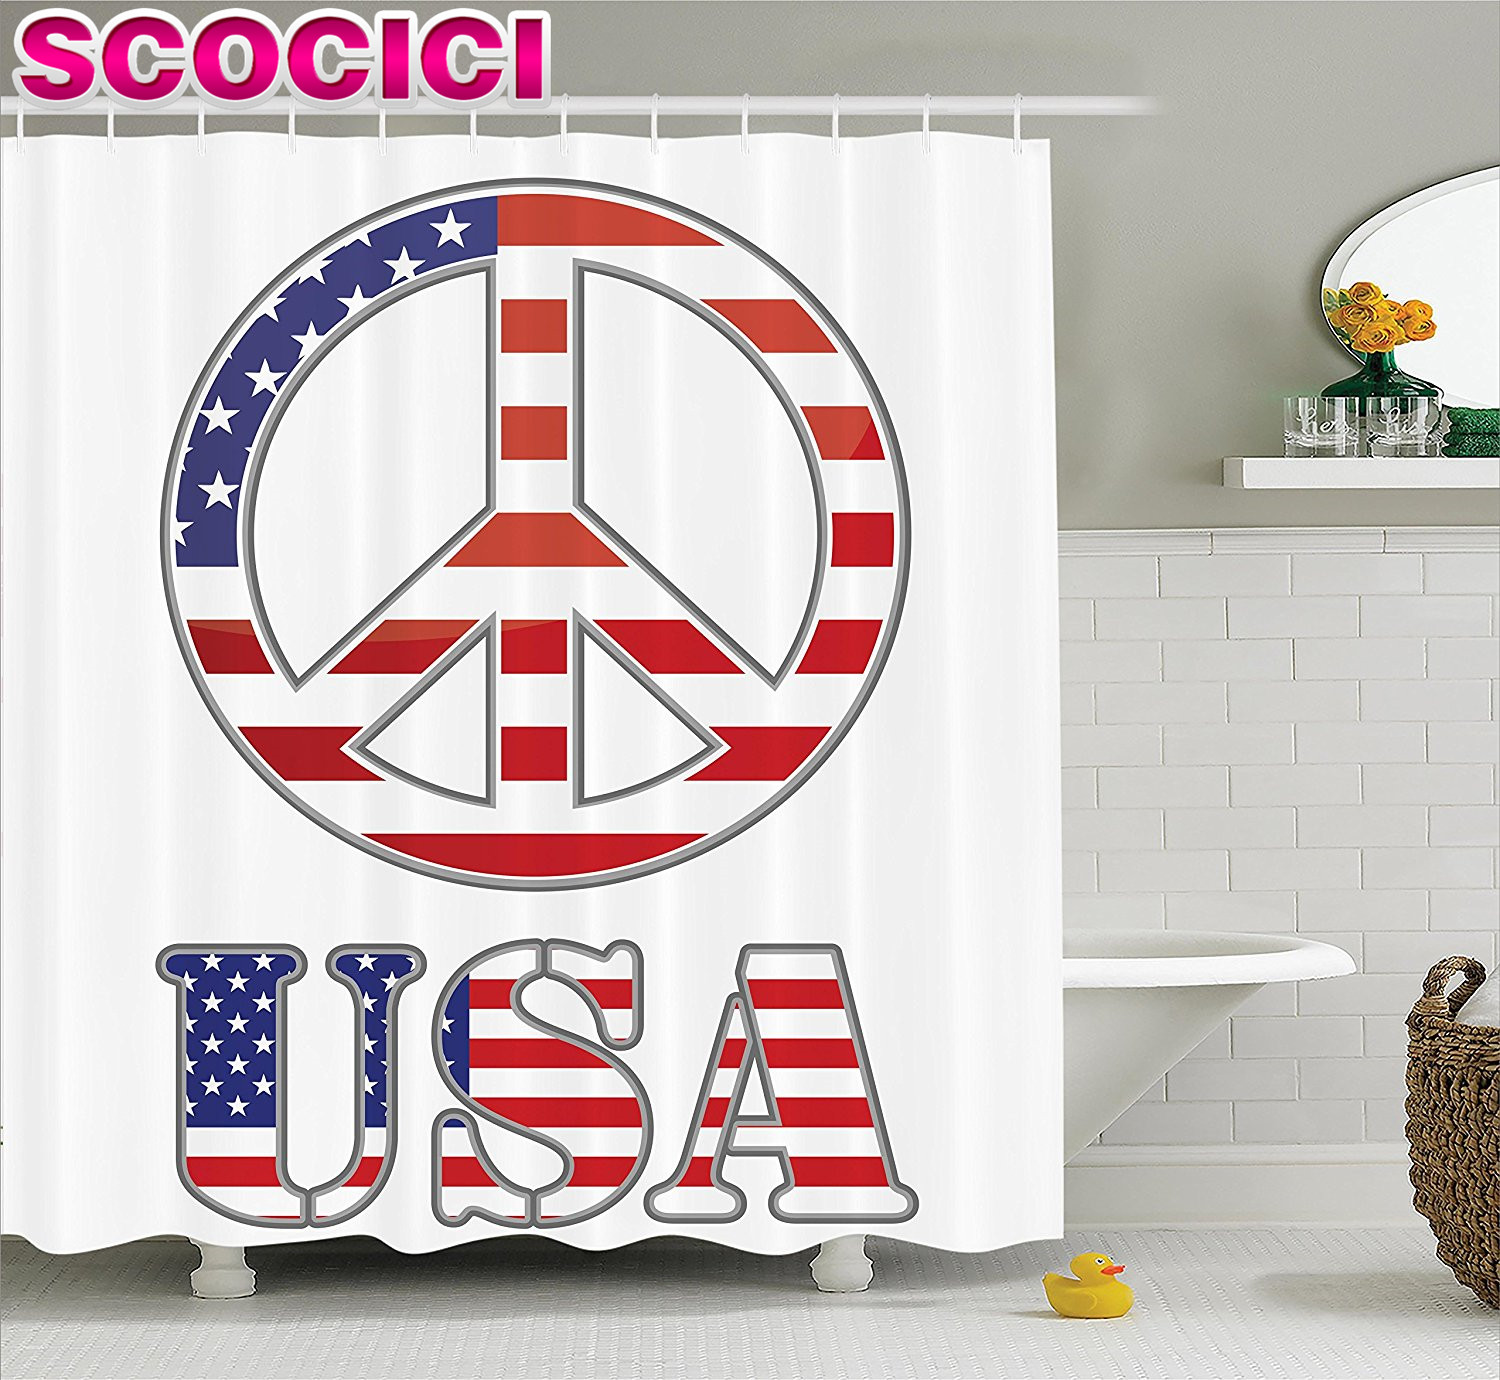 Groovy Decorations Shower Curtain Set Modern Peace Sign With USA Flag Color  Design Hippie Freedom No